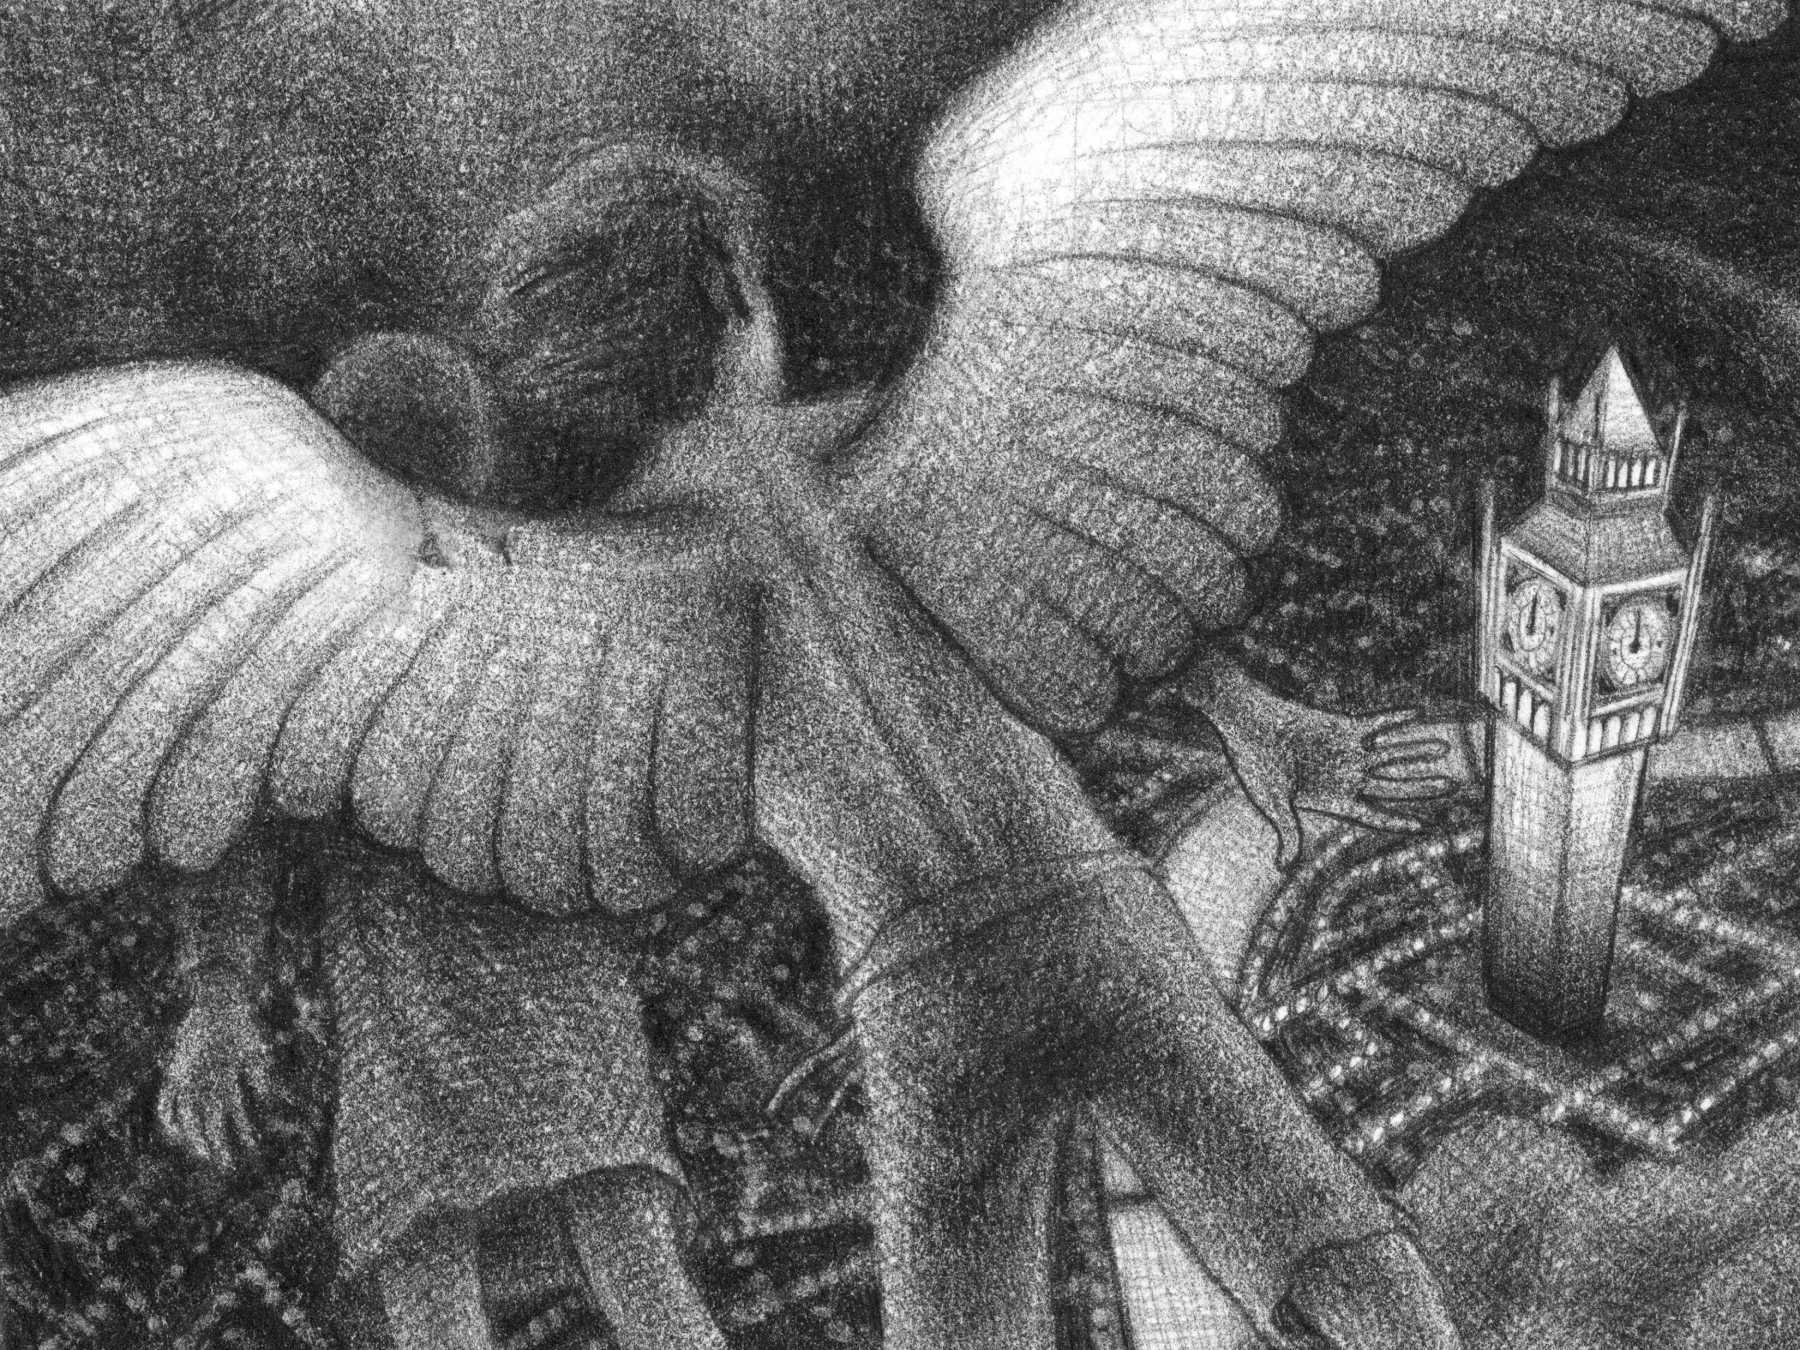 Exclusive: Popwrapped Unveil The Final Clues To Brian Selznick's New Book